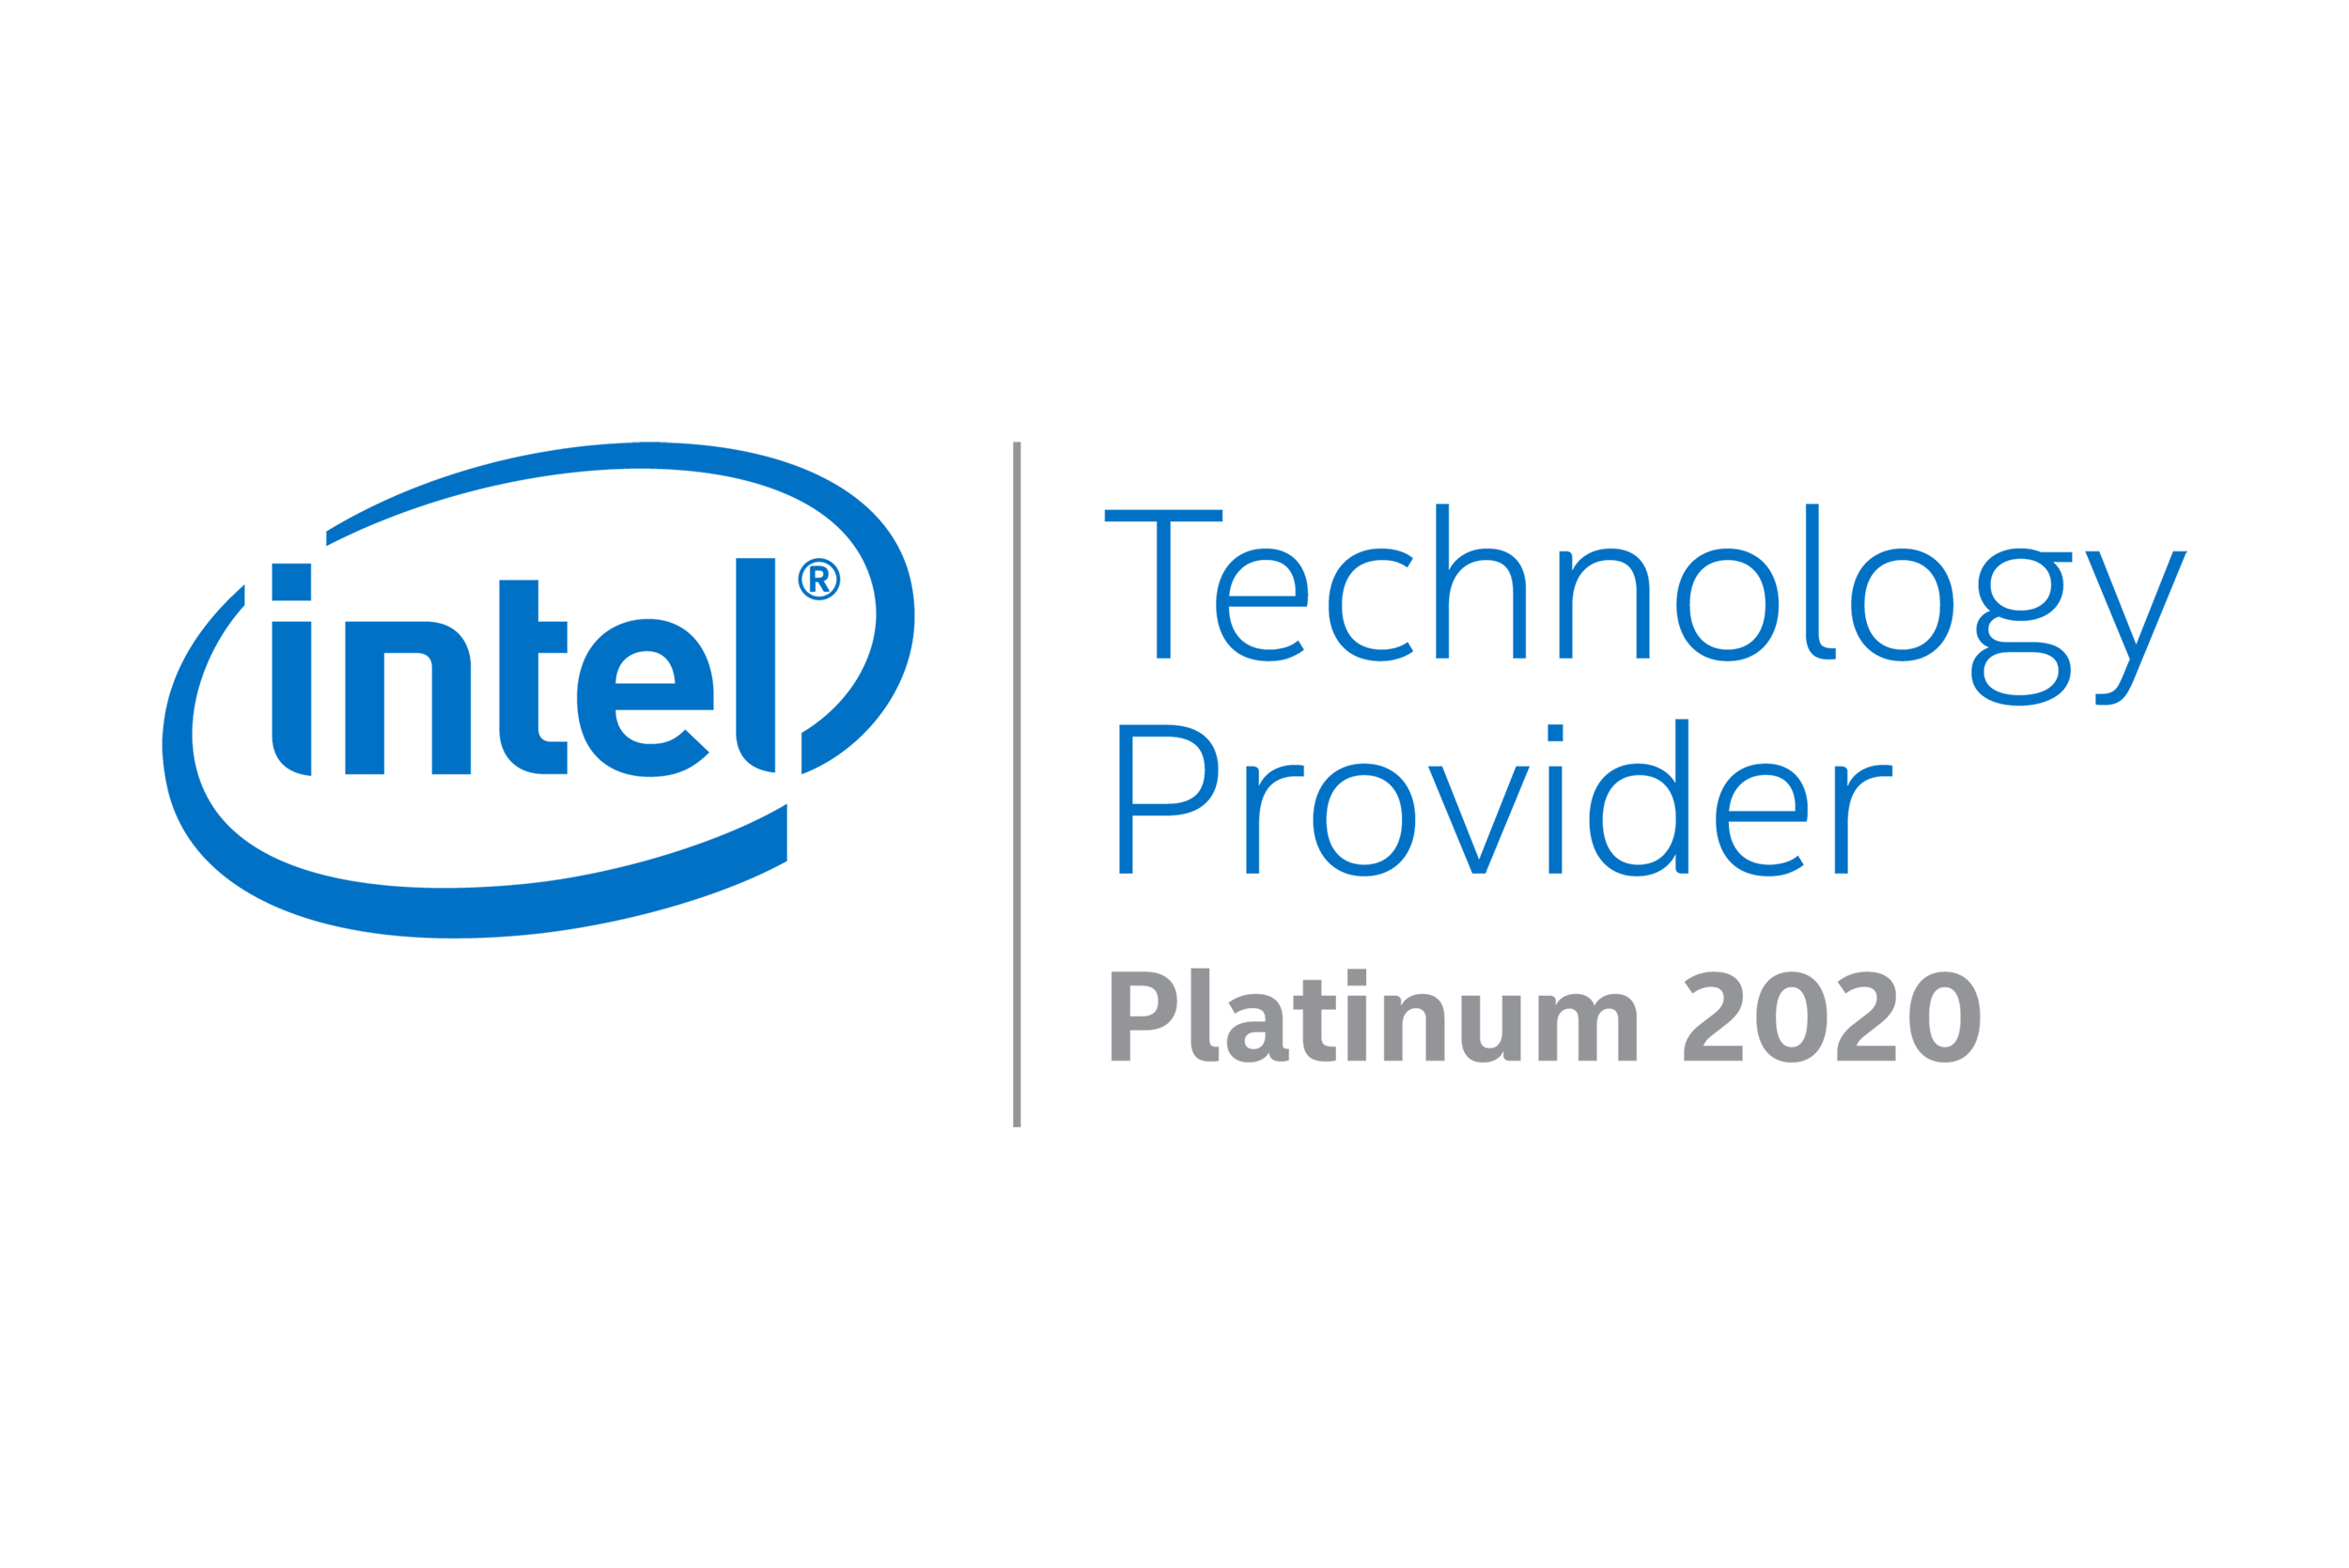 Intel Technology Provider Platinum 2020